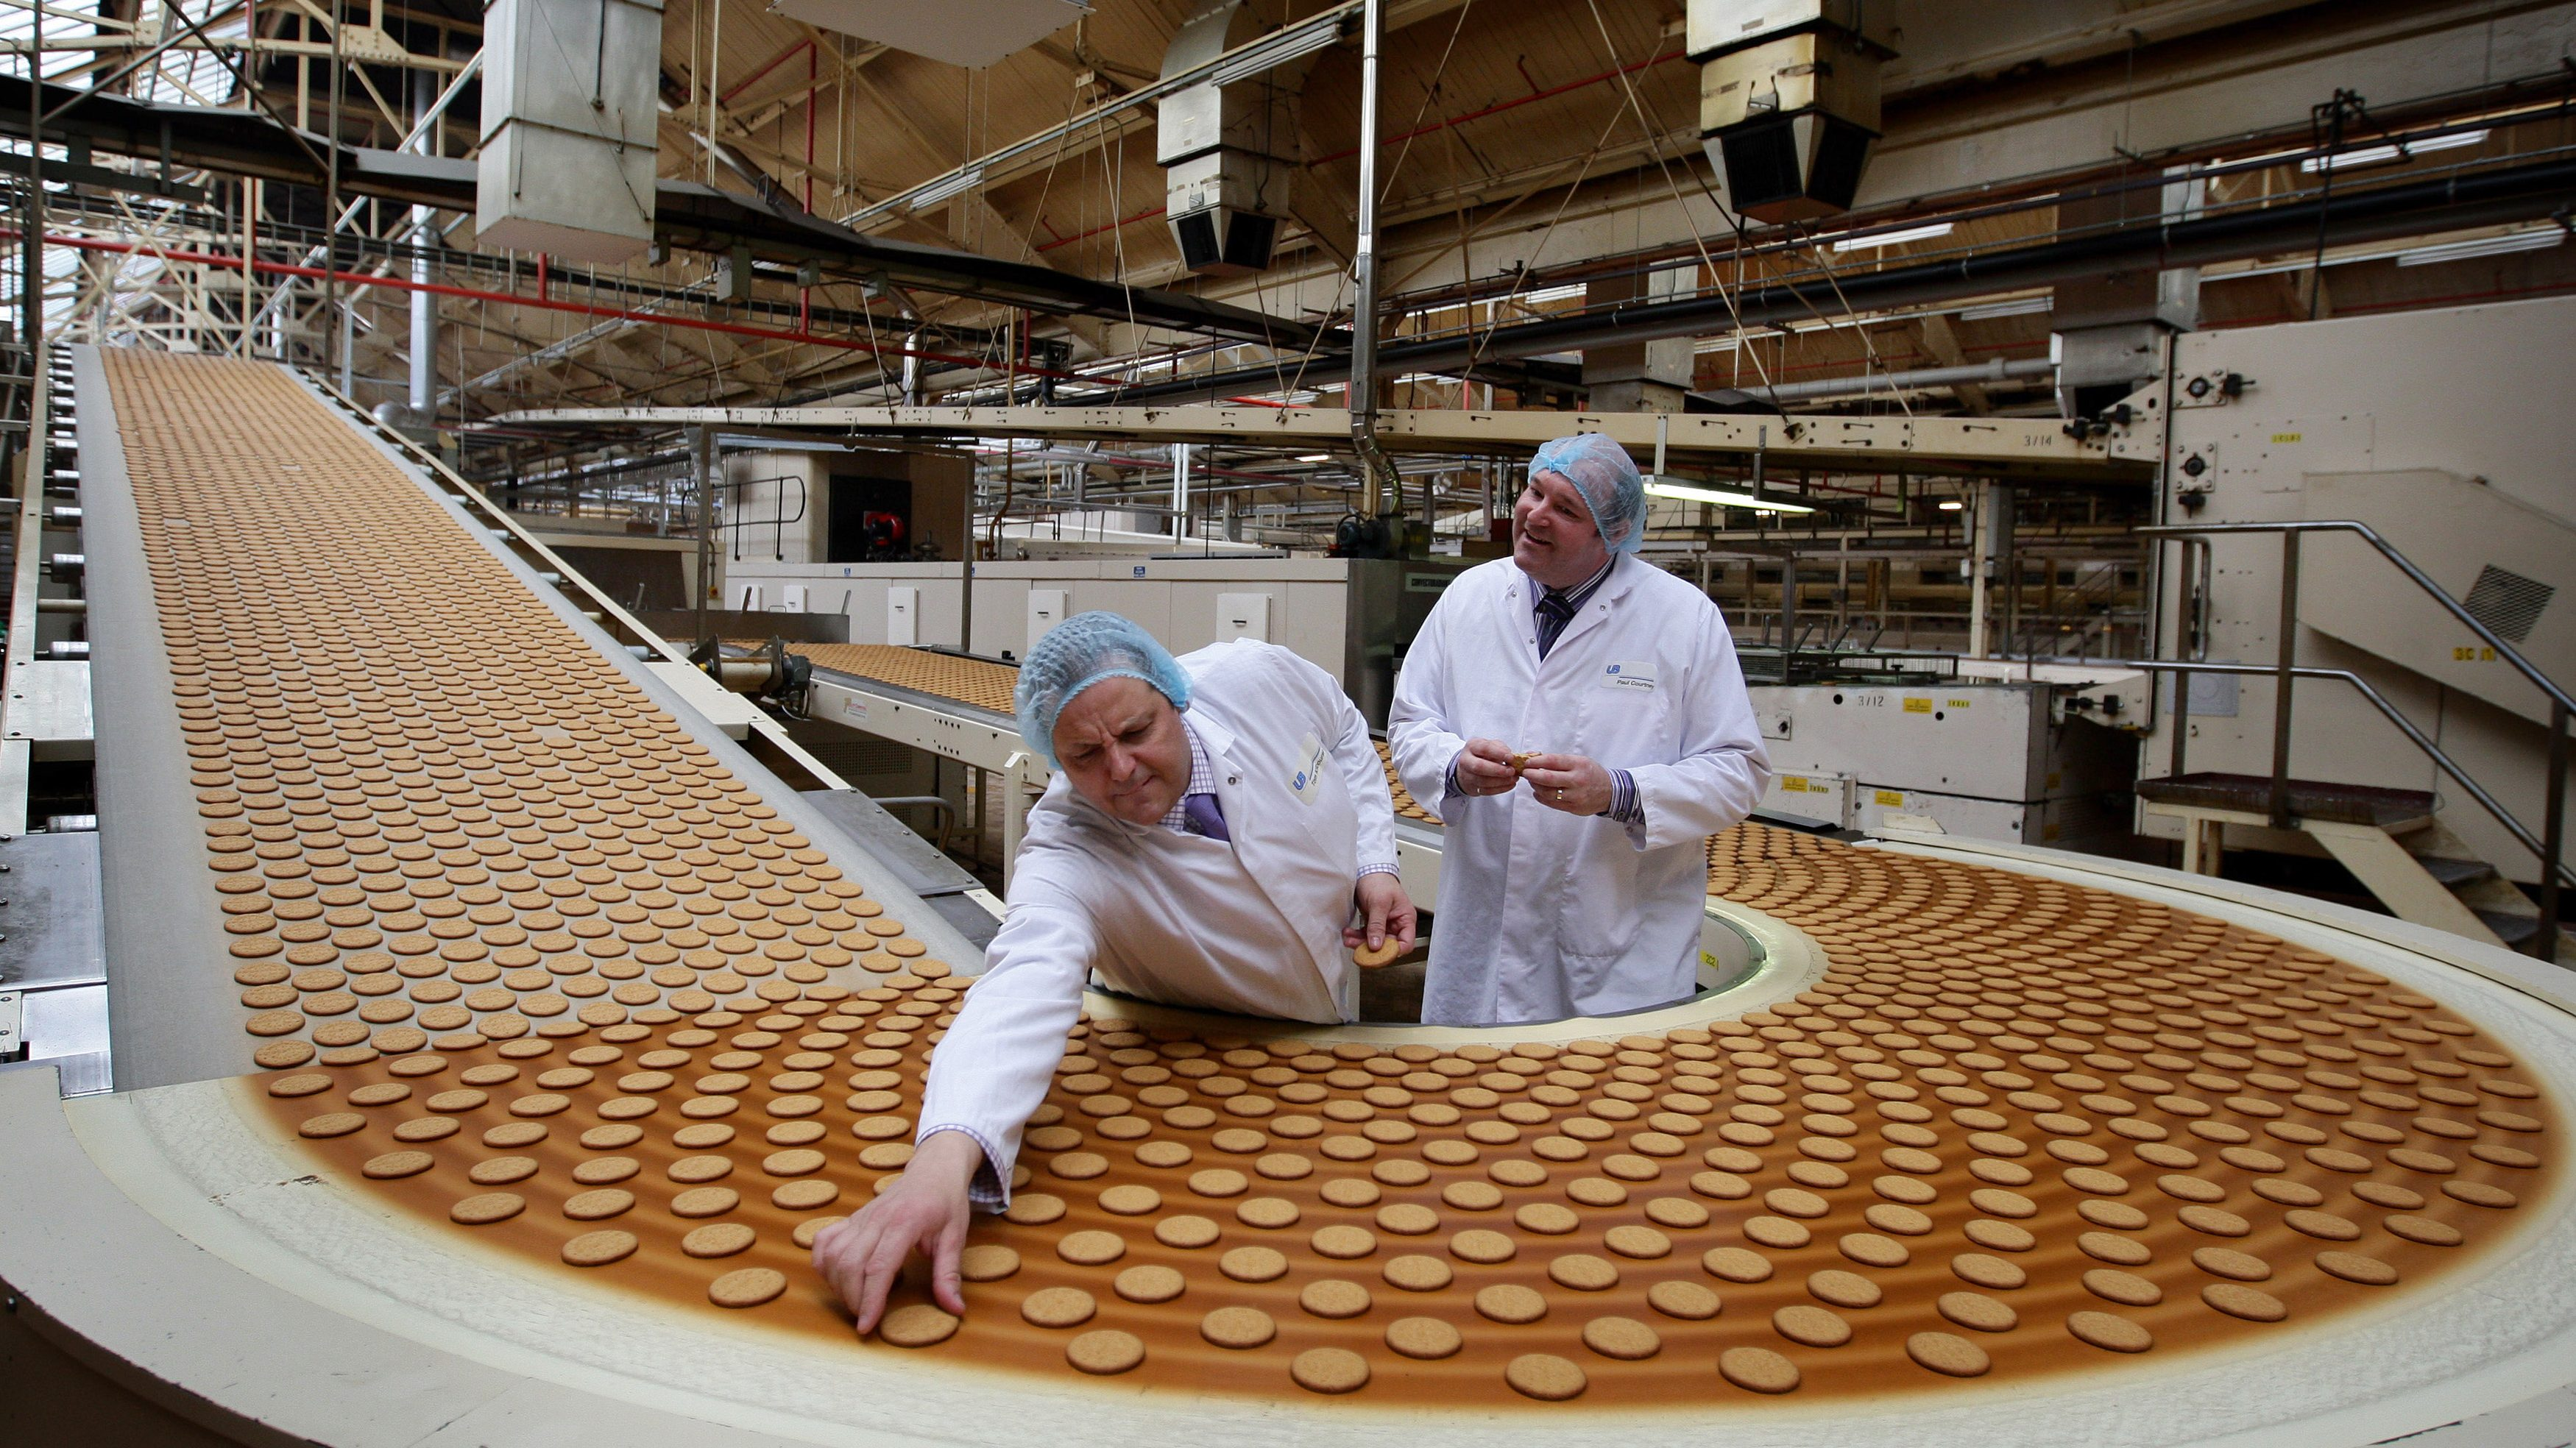 Design and Development Head Chef , Paul Courtney (R) and Manufacturing Manager, Tom Kilcourse, pose for a photograph on a biscuit production line at the McVitie's factory in Stockport, northern England March 25, 2011. Britain's Prince William has asked the company to produce a chocolate biscuit cake, as an addition to the official wedding cake to be made by Fiona Cairns, for his wedding to Kate Middleton on April 29.   Photograph taken on March 25, 2011.